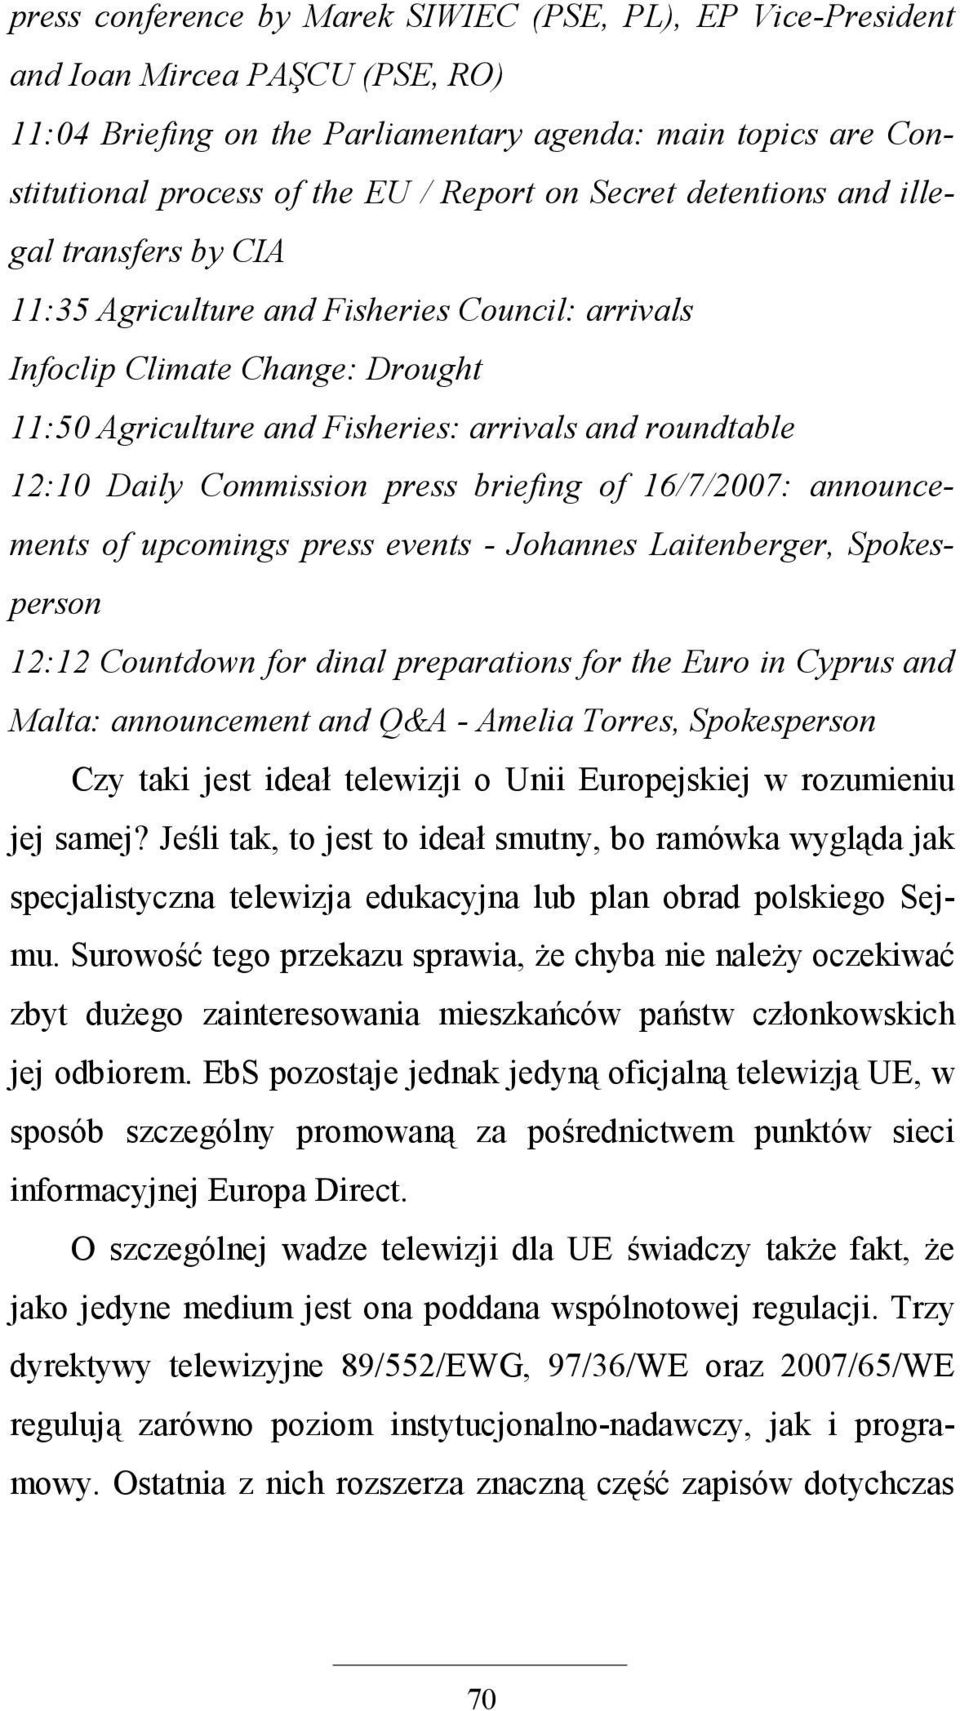 Commission press briefing of 16/7/2007: announcements of upcomings press events - Johannes Laitenberger, Spokesperson 12:12 Countdown for dinal preparations for the Euro in Cyprus and Malta: